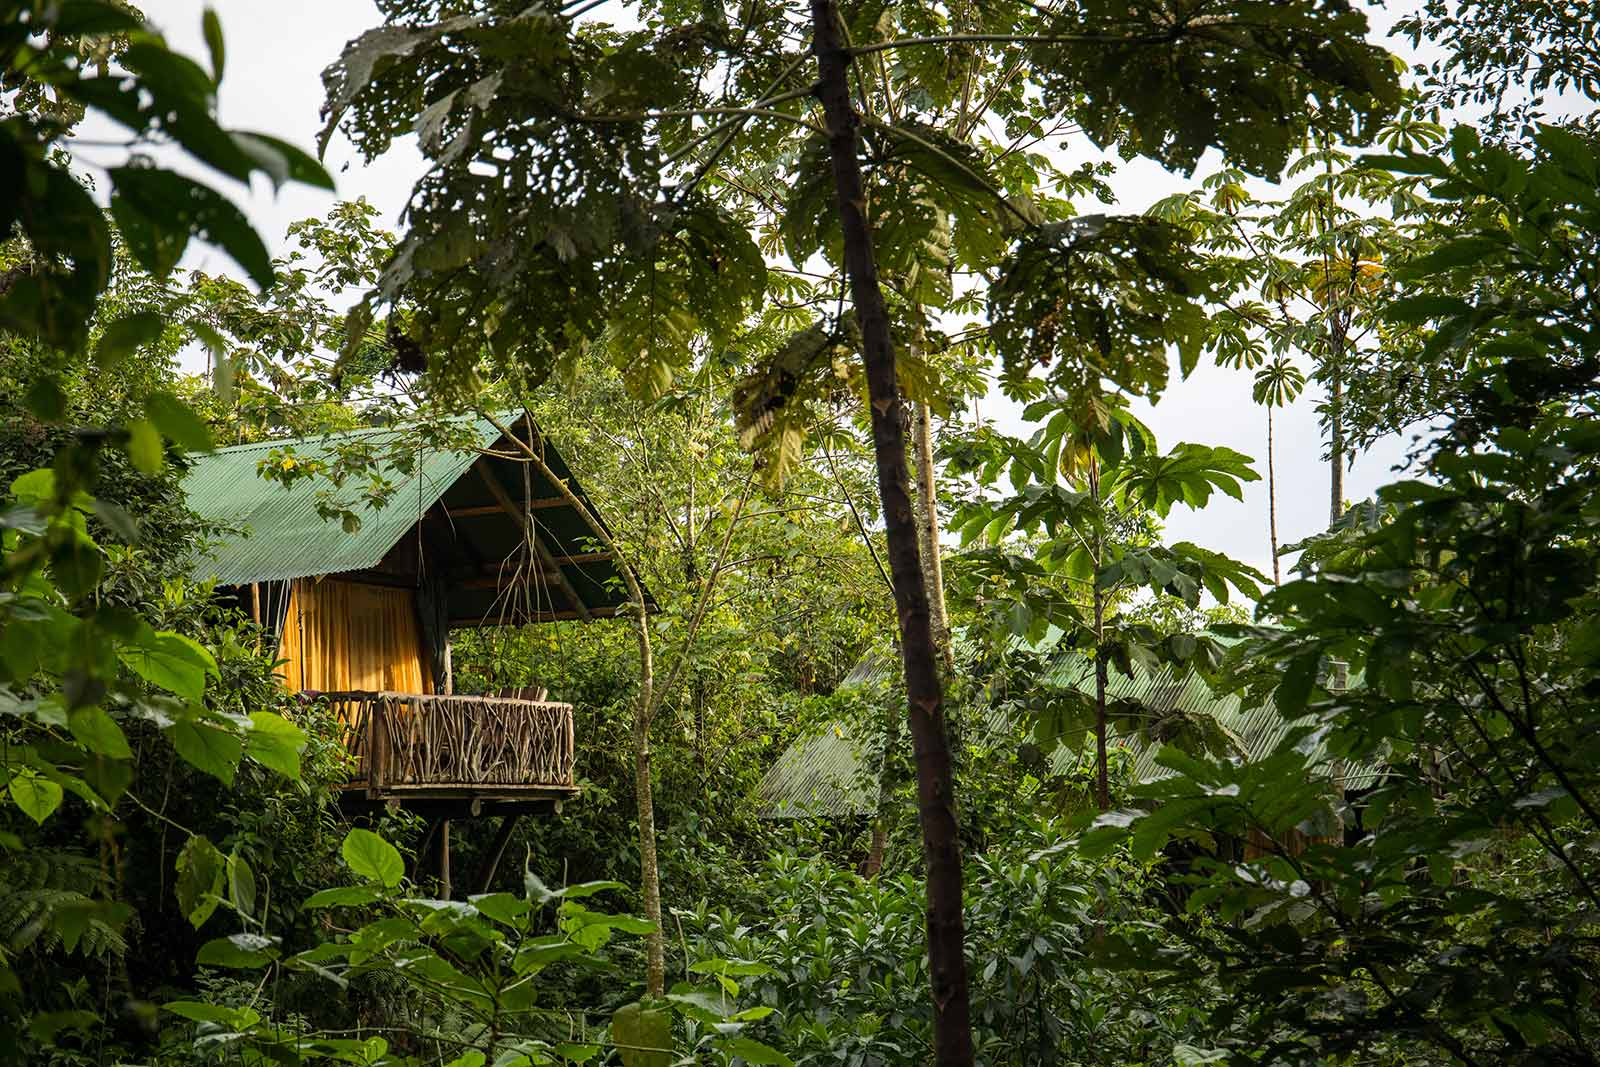 bungalow tigra rainforest lodge